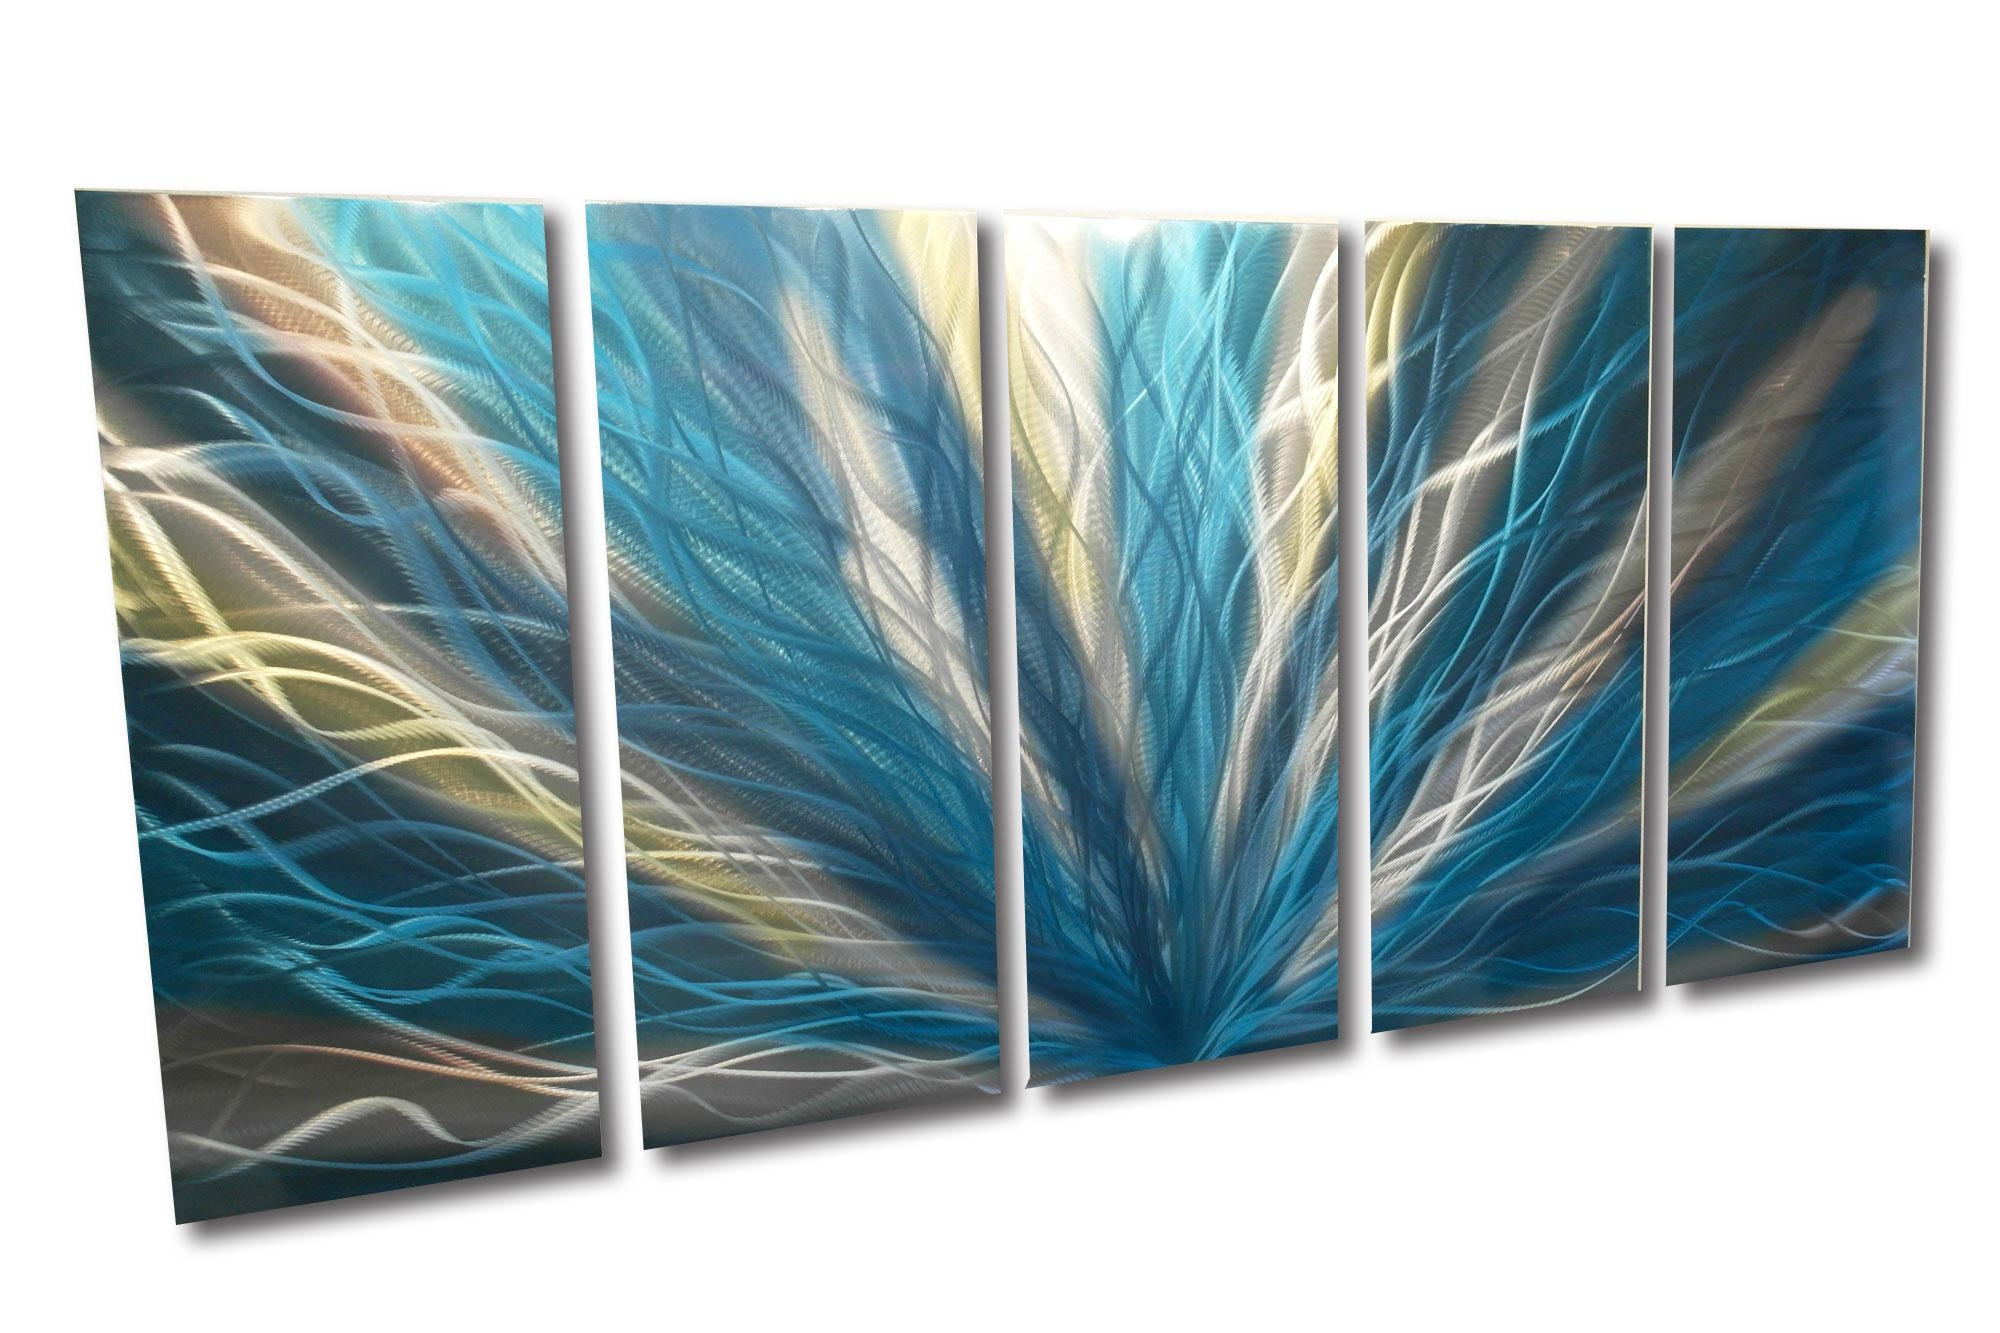 Home · Inspiring Art Gallery · Online Store Poweredstorenvy Throughout Teal And Gold Wall Art (View 5 of 20)